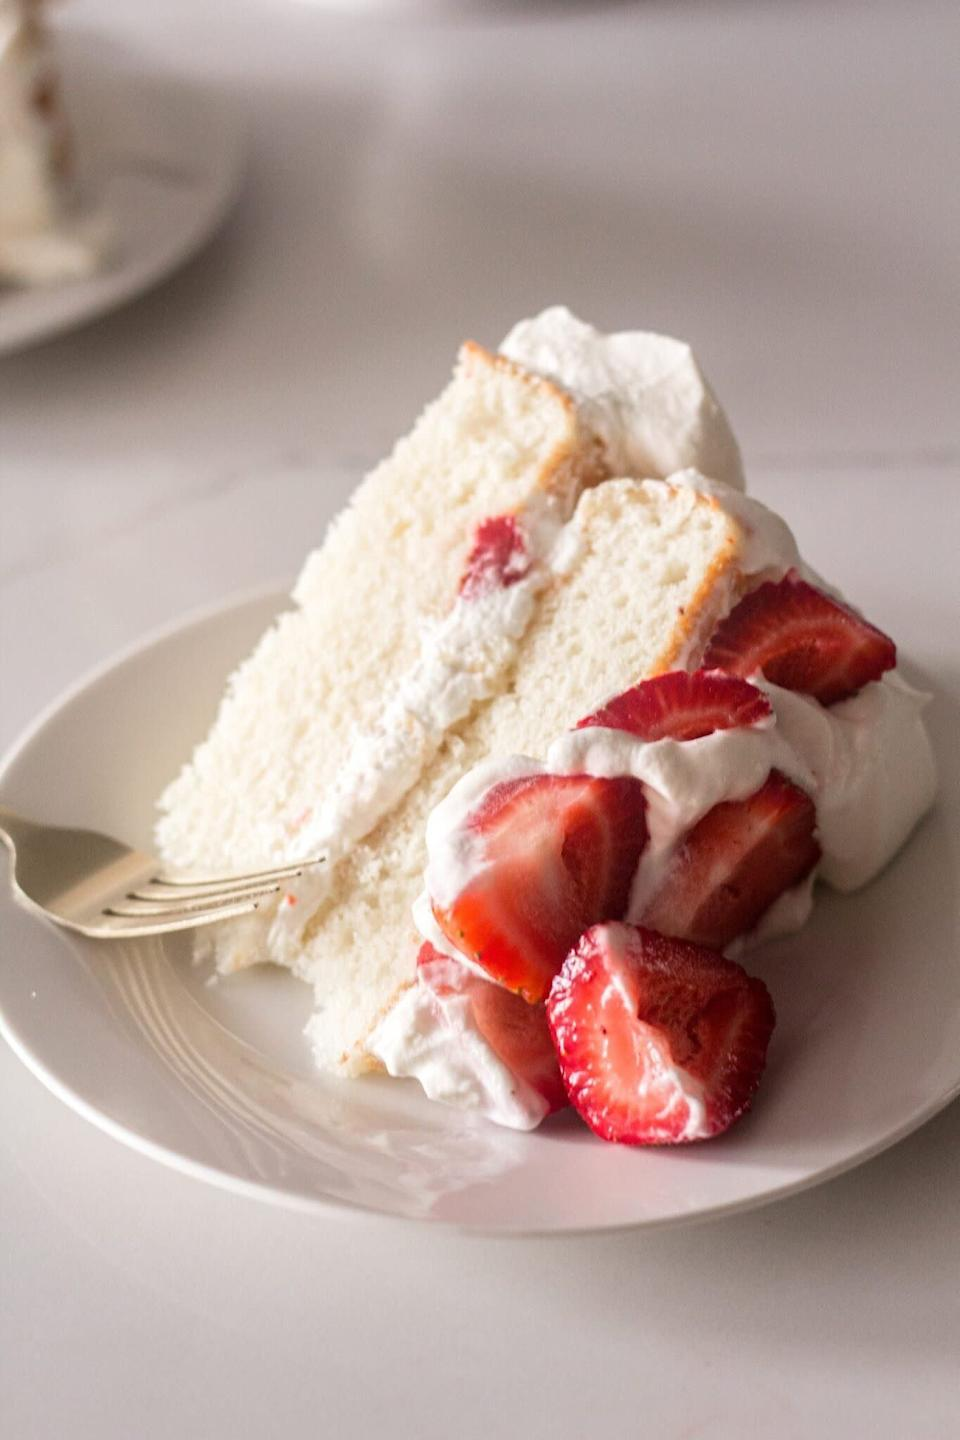 "<a href=""https://www.alittlefood.com/strawberry-shortcake-cake/"" rel=""nofollow noopener"" target=""_blank"" data-ylk=""slk:Strawberry Shortcake Cake from A Little Food"" class=""link rapid-noclick-resp""><strong>Strawberry Shortcake Cake from A Little Food</strong></a>"